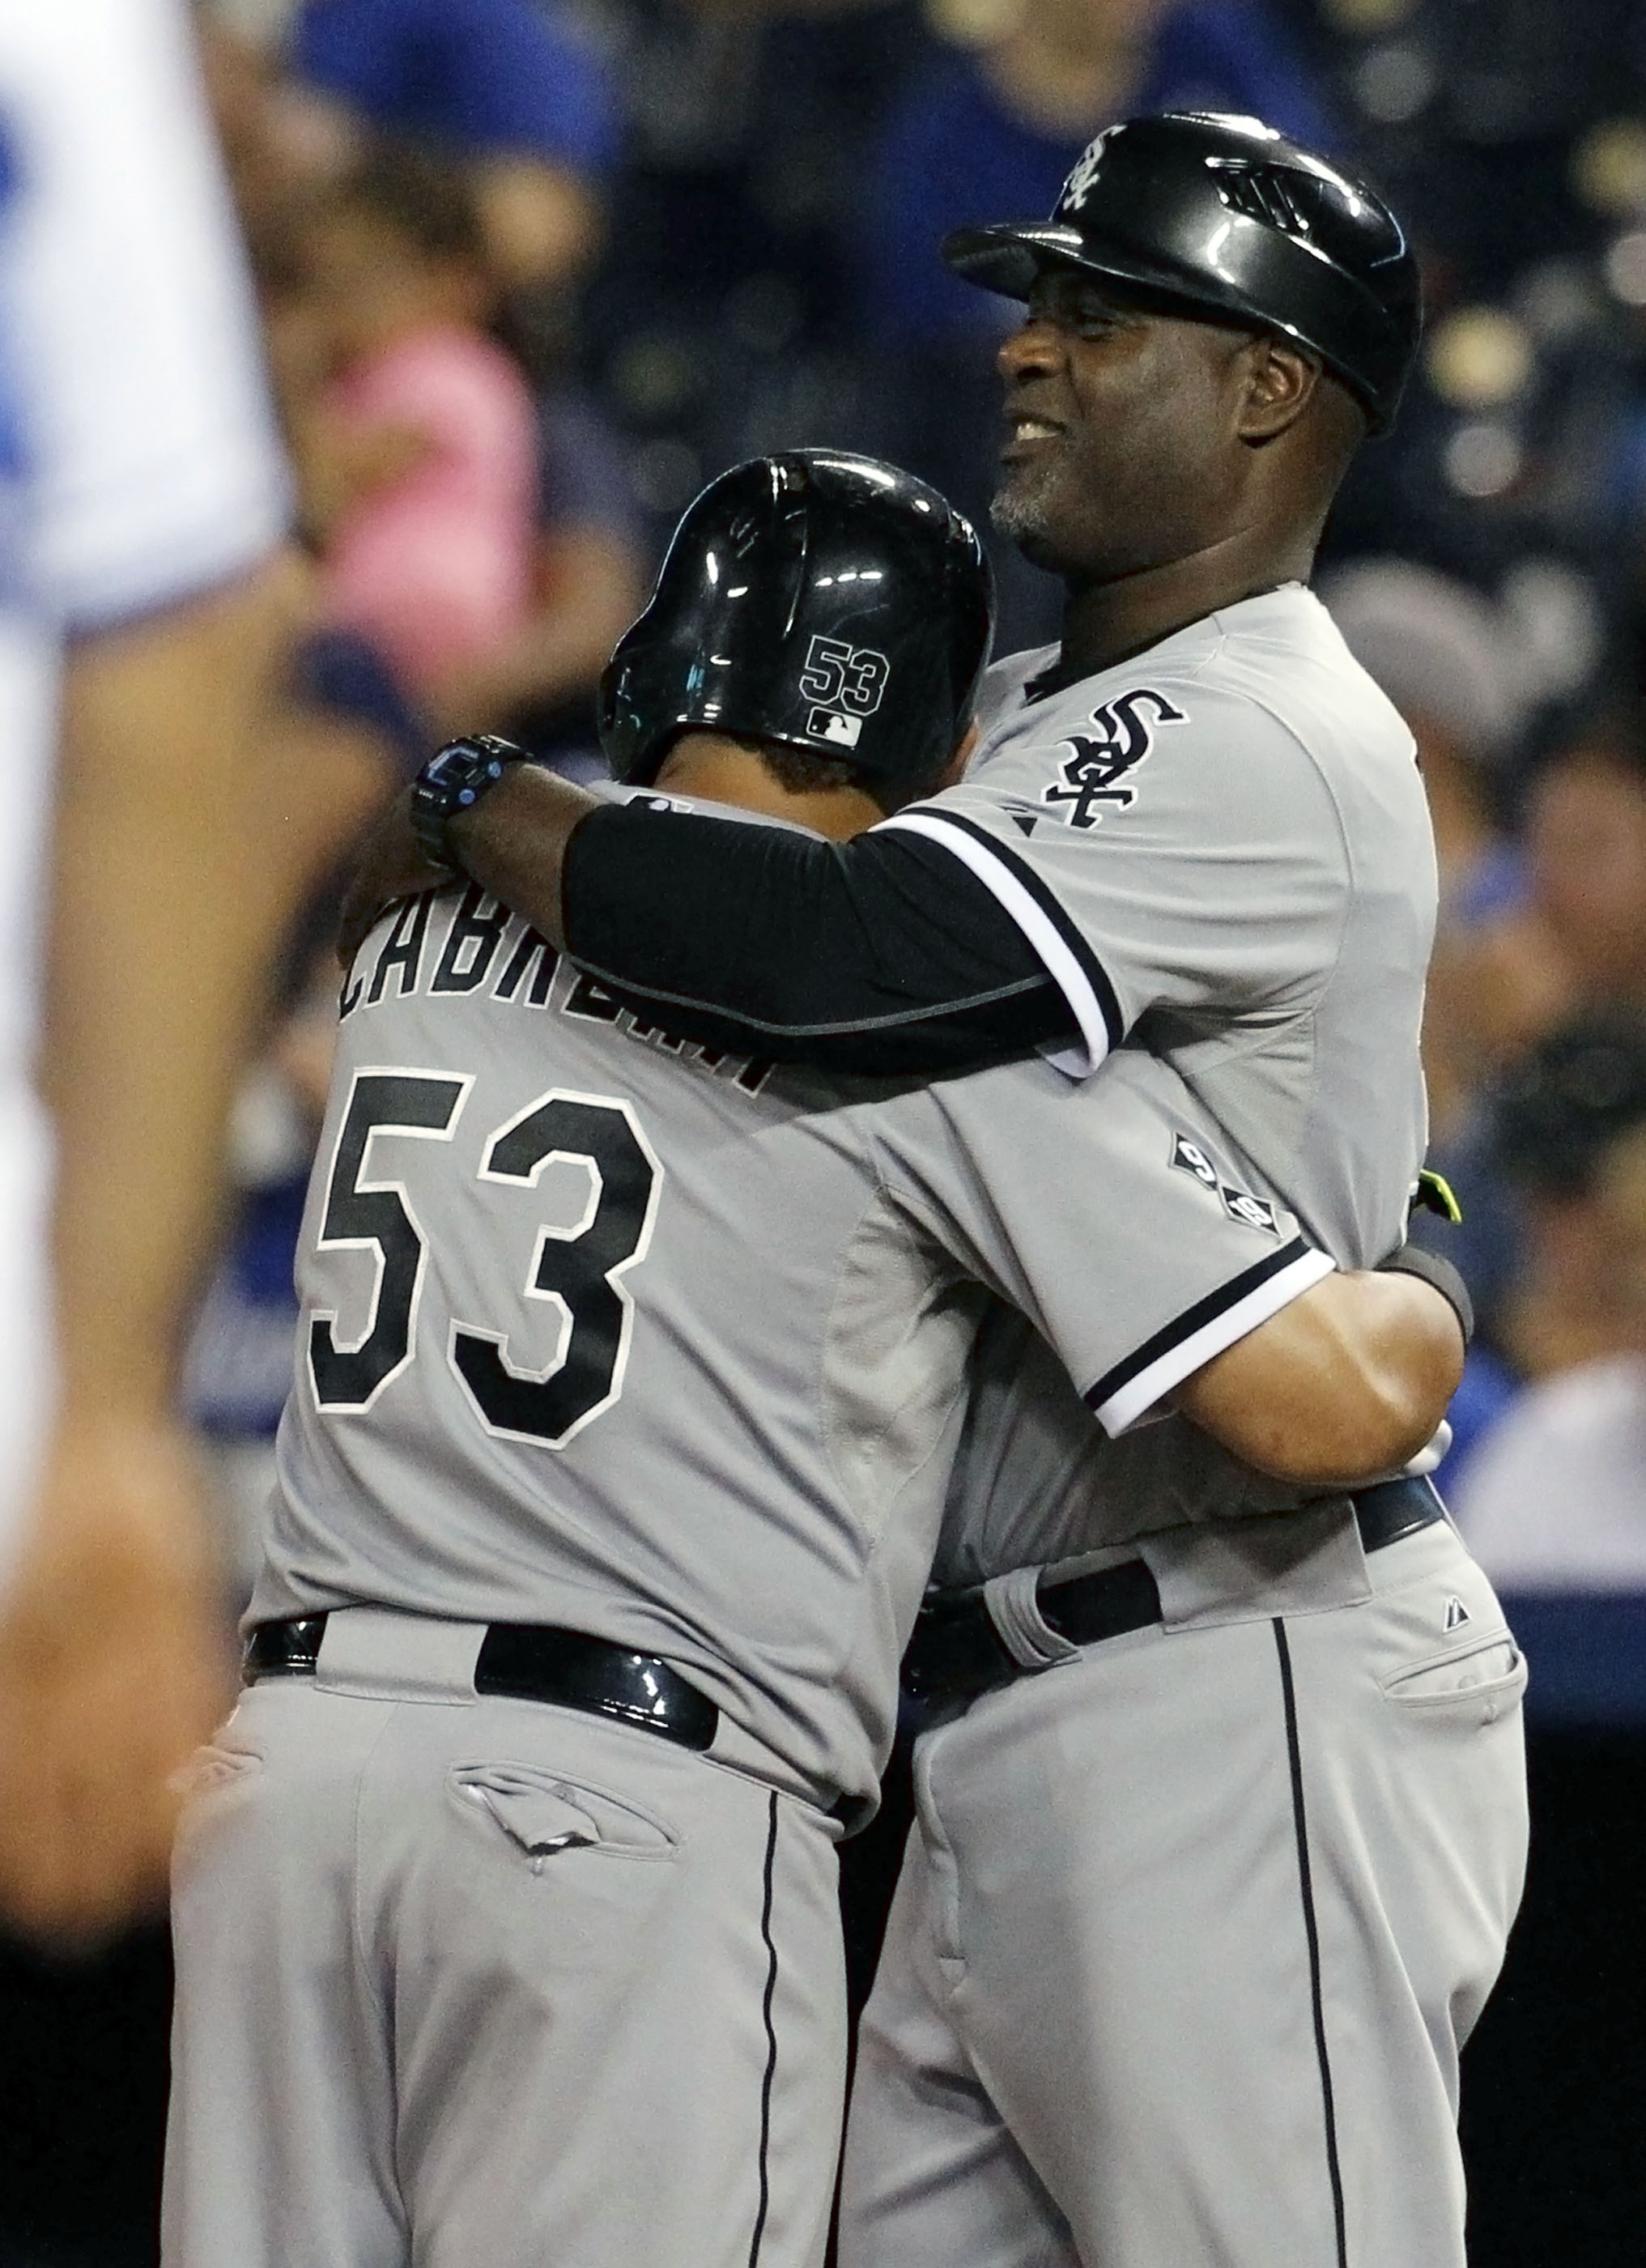 Chicago White Sox' Melky Cabrera (53) gets a hug from first base coach Daryl Boston (32) after hitting an RBI single in the ninth inning of a baseball game against the Kansas City Royals at Kauffman Stadium in Kansas City, Mo., Saturday, Sept. 5, 2015. Th